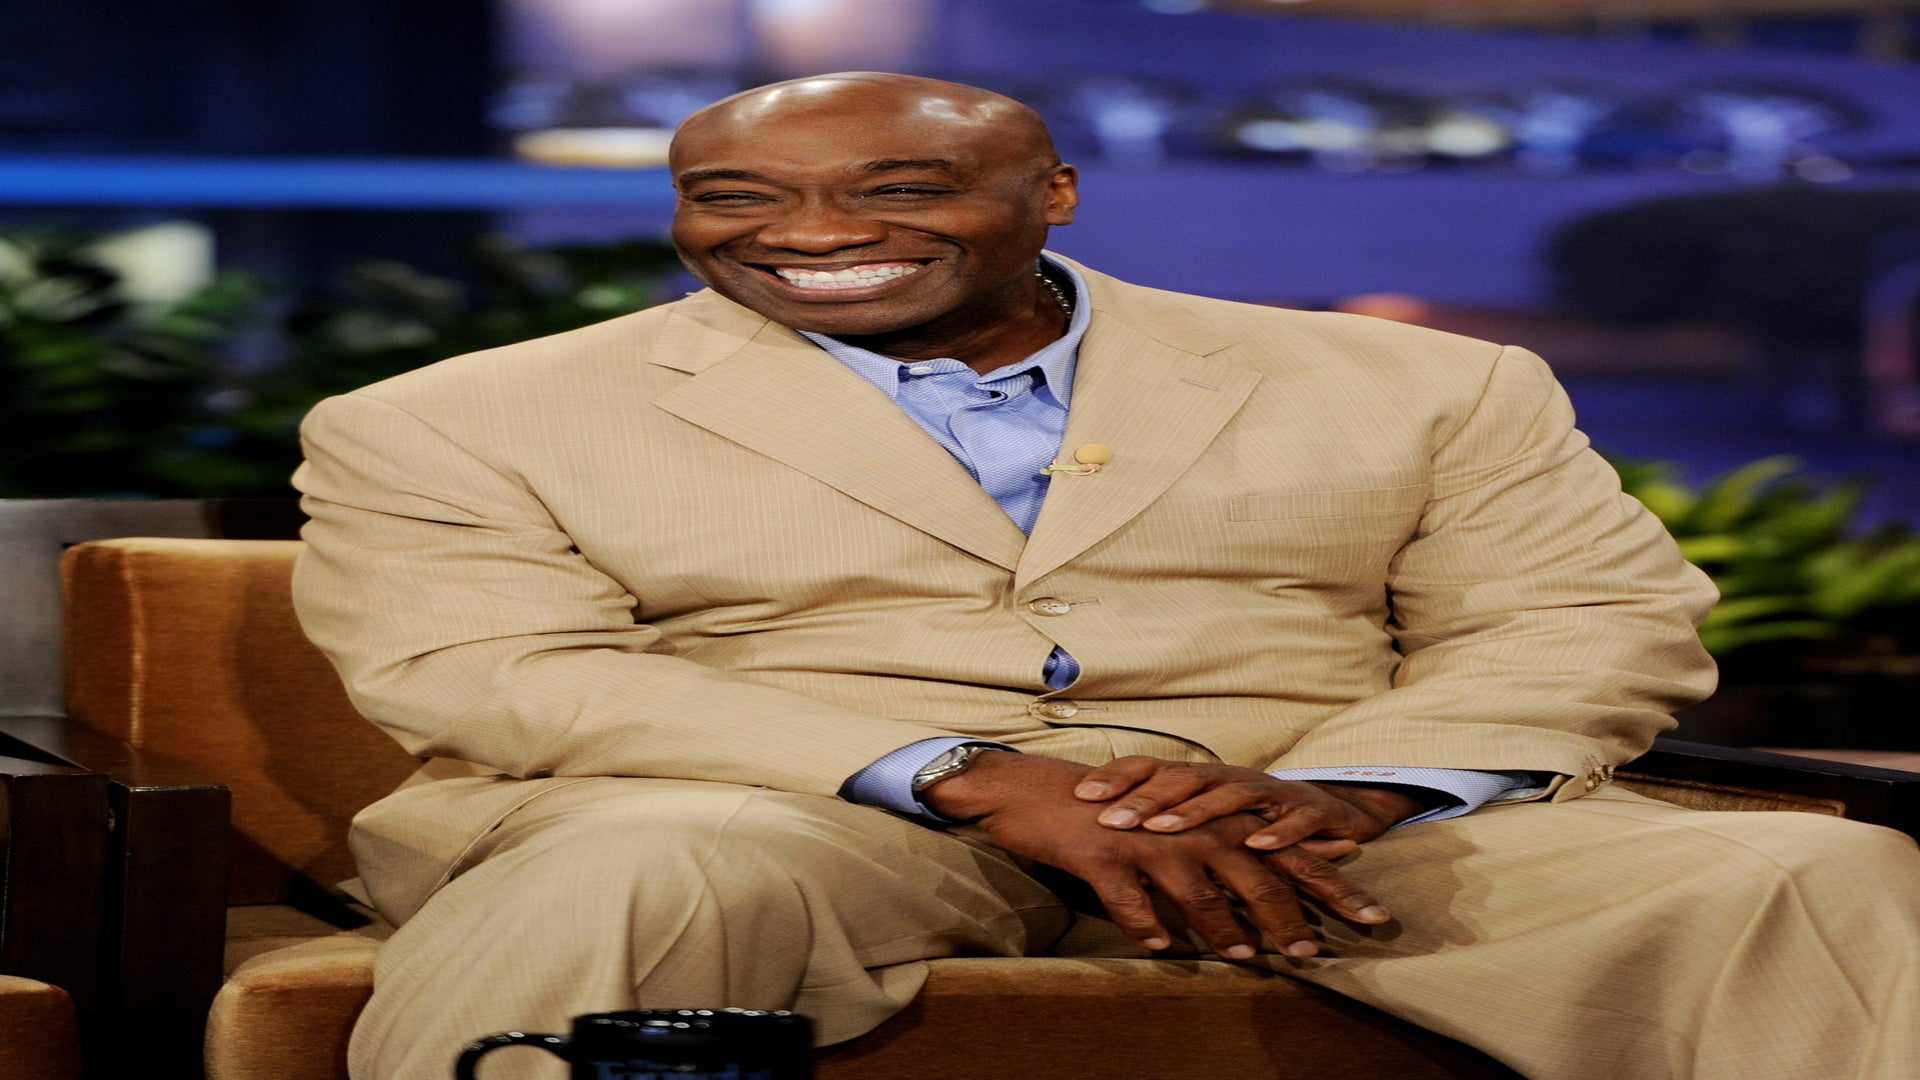 Friends & Family Say Goodbye to Michael Clarke Duncan